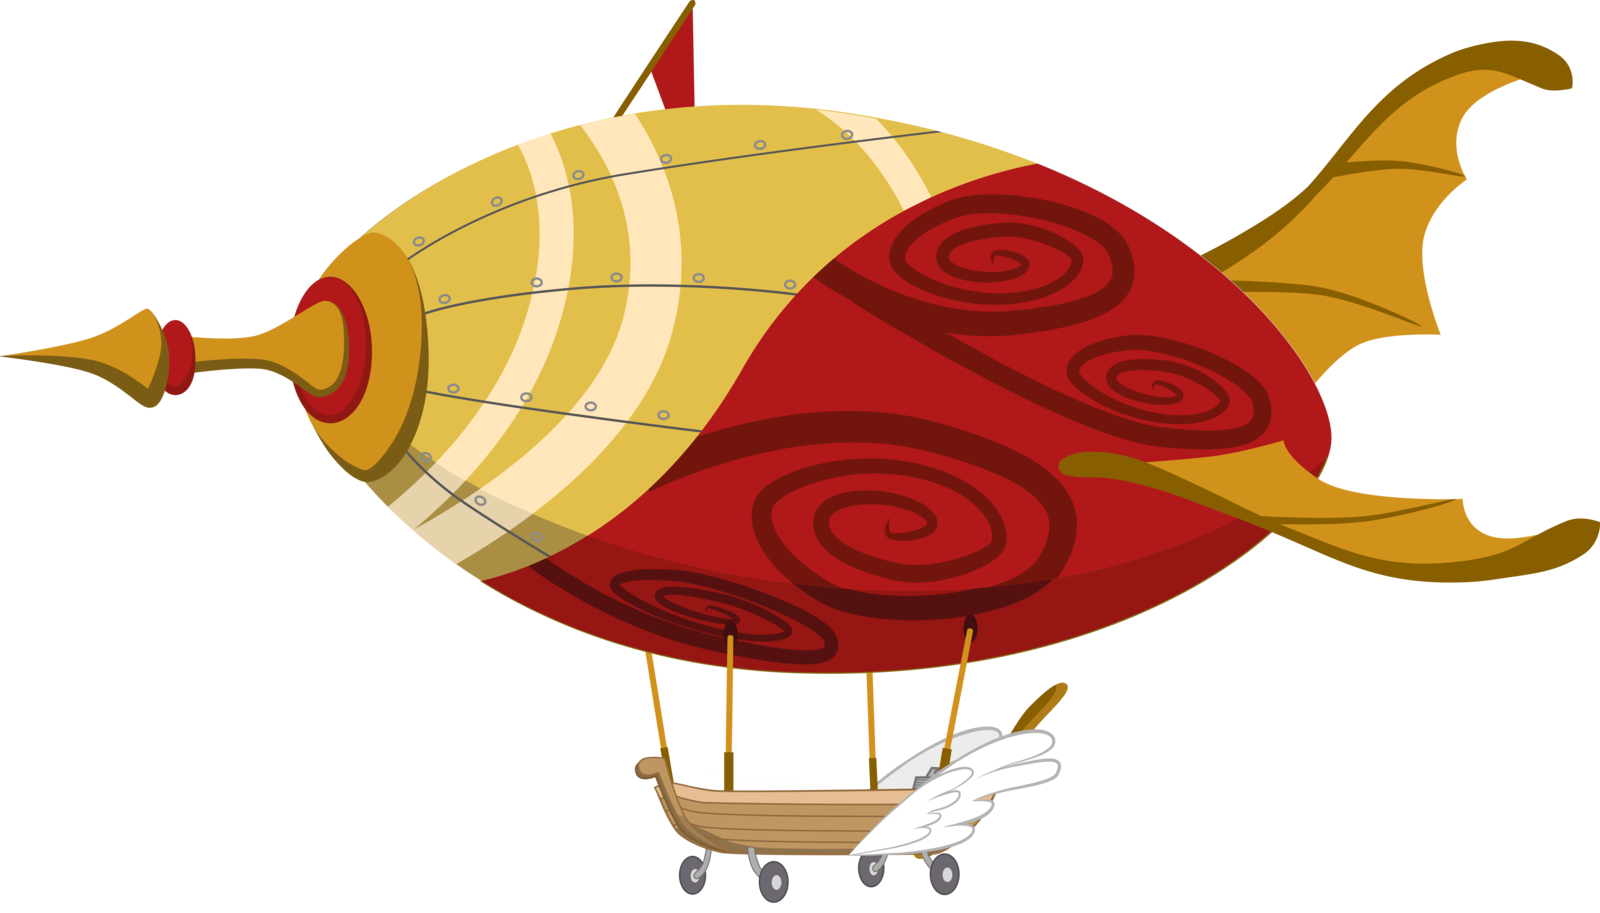 Steampunk clipart blimp. Image result for mlp